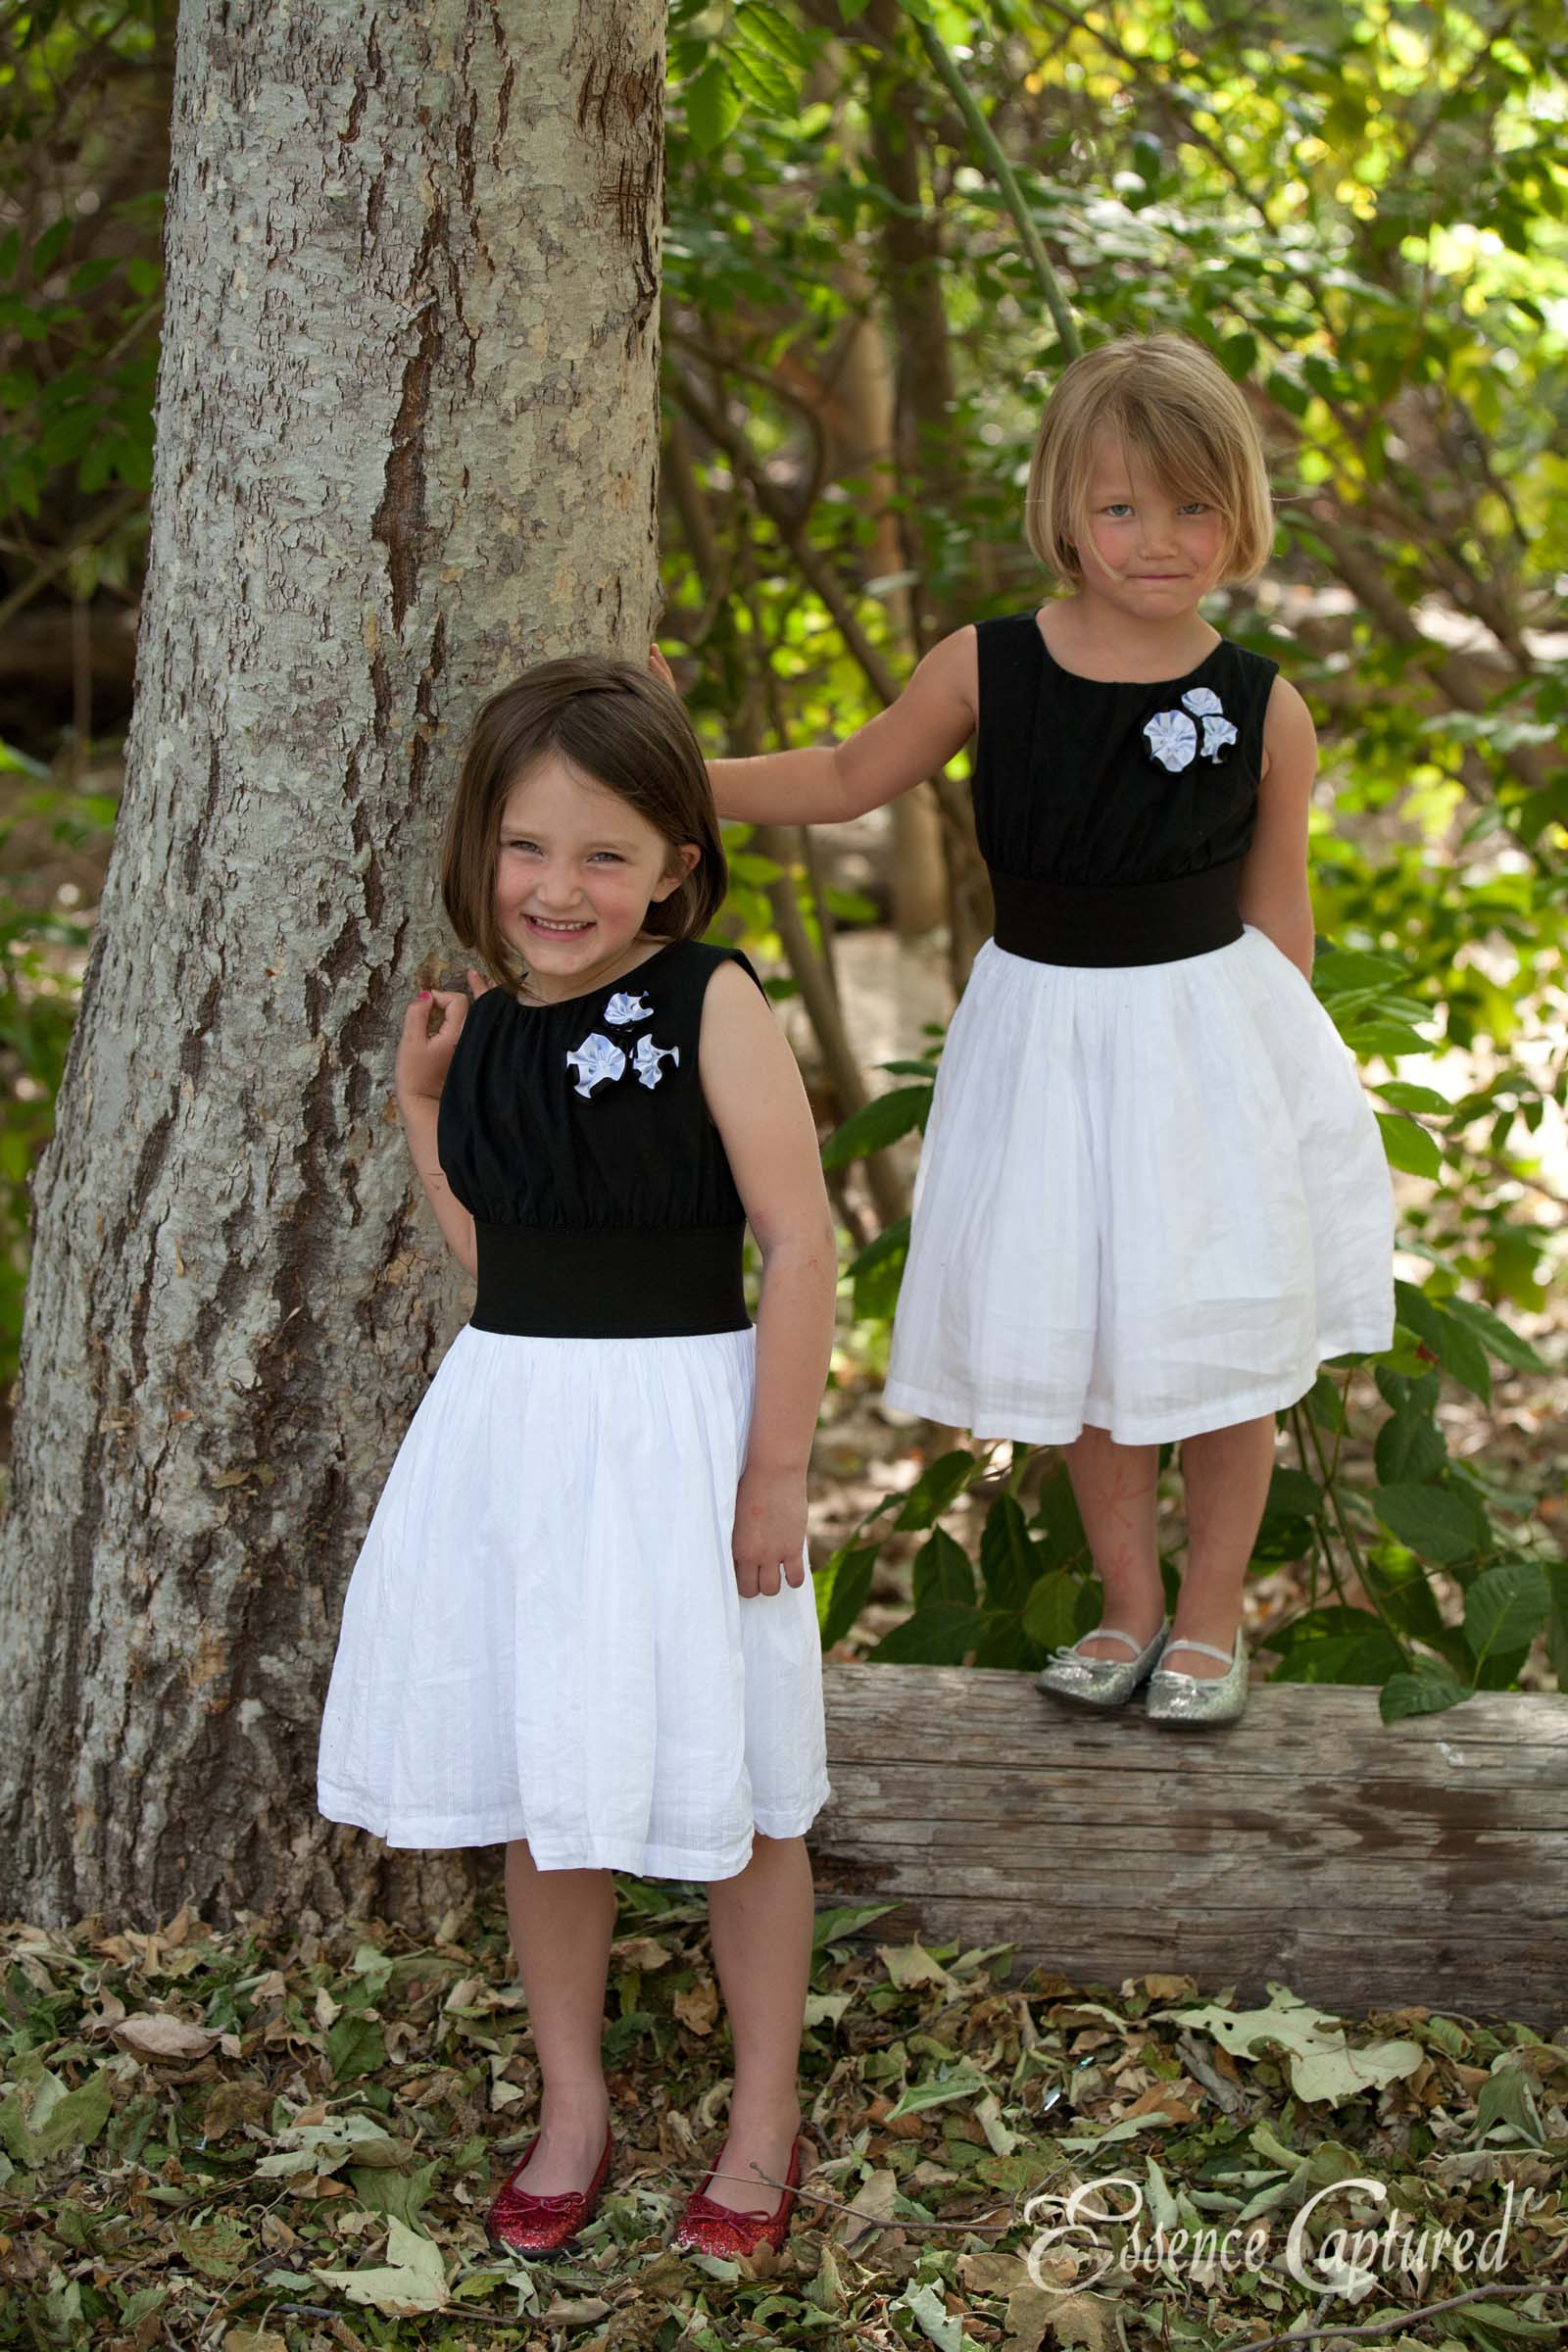 two young sisters matching dresses in park trees